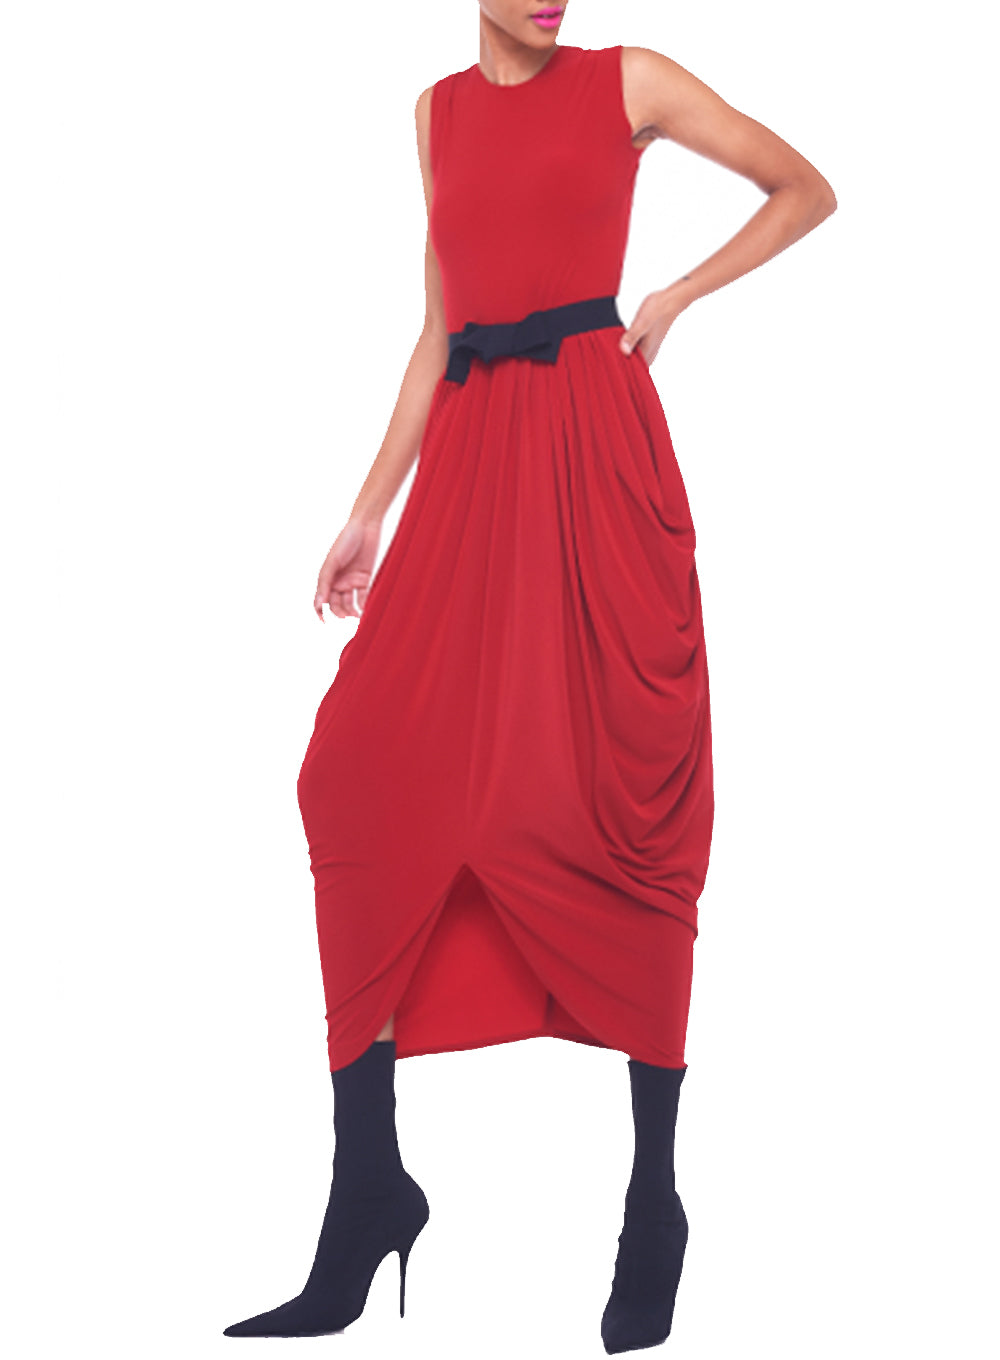 NORMA KAMALI | Sleeveless Waterfall Dress in Red